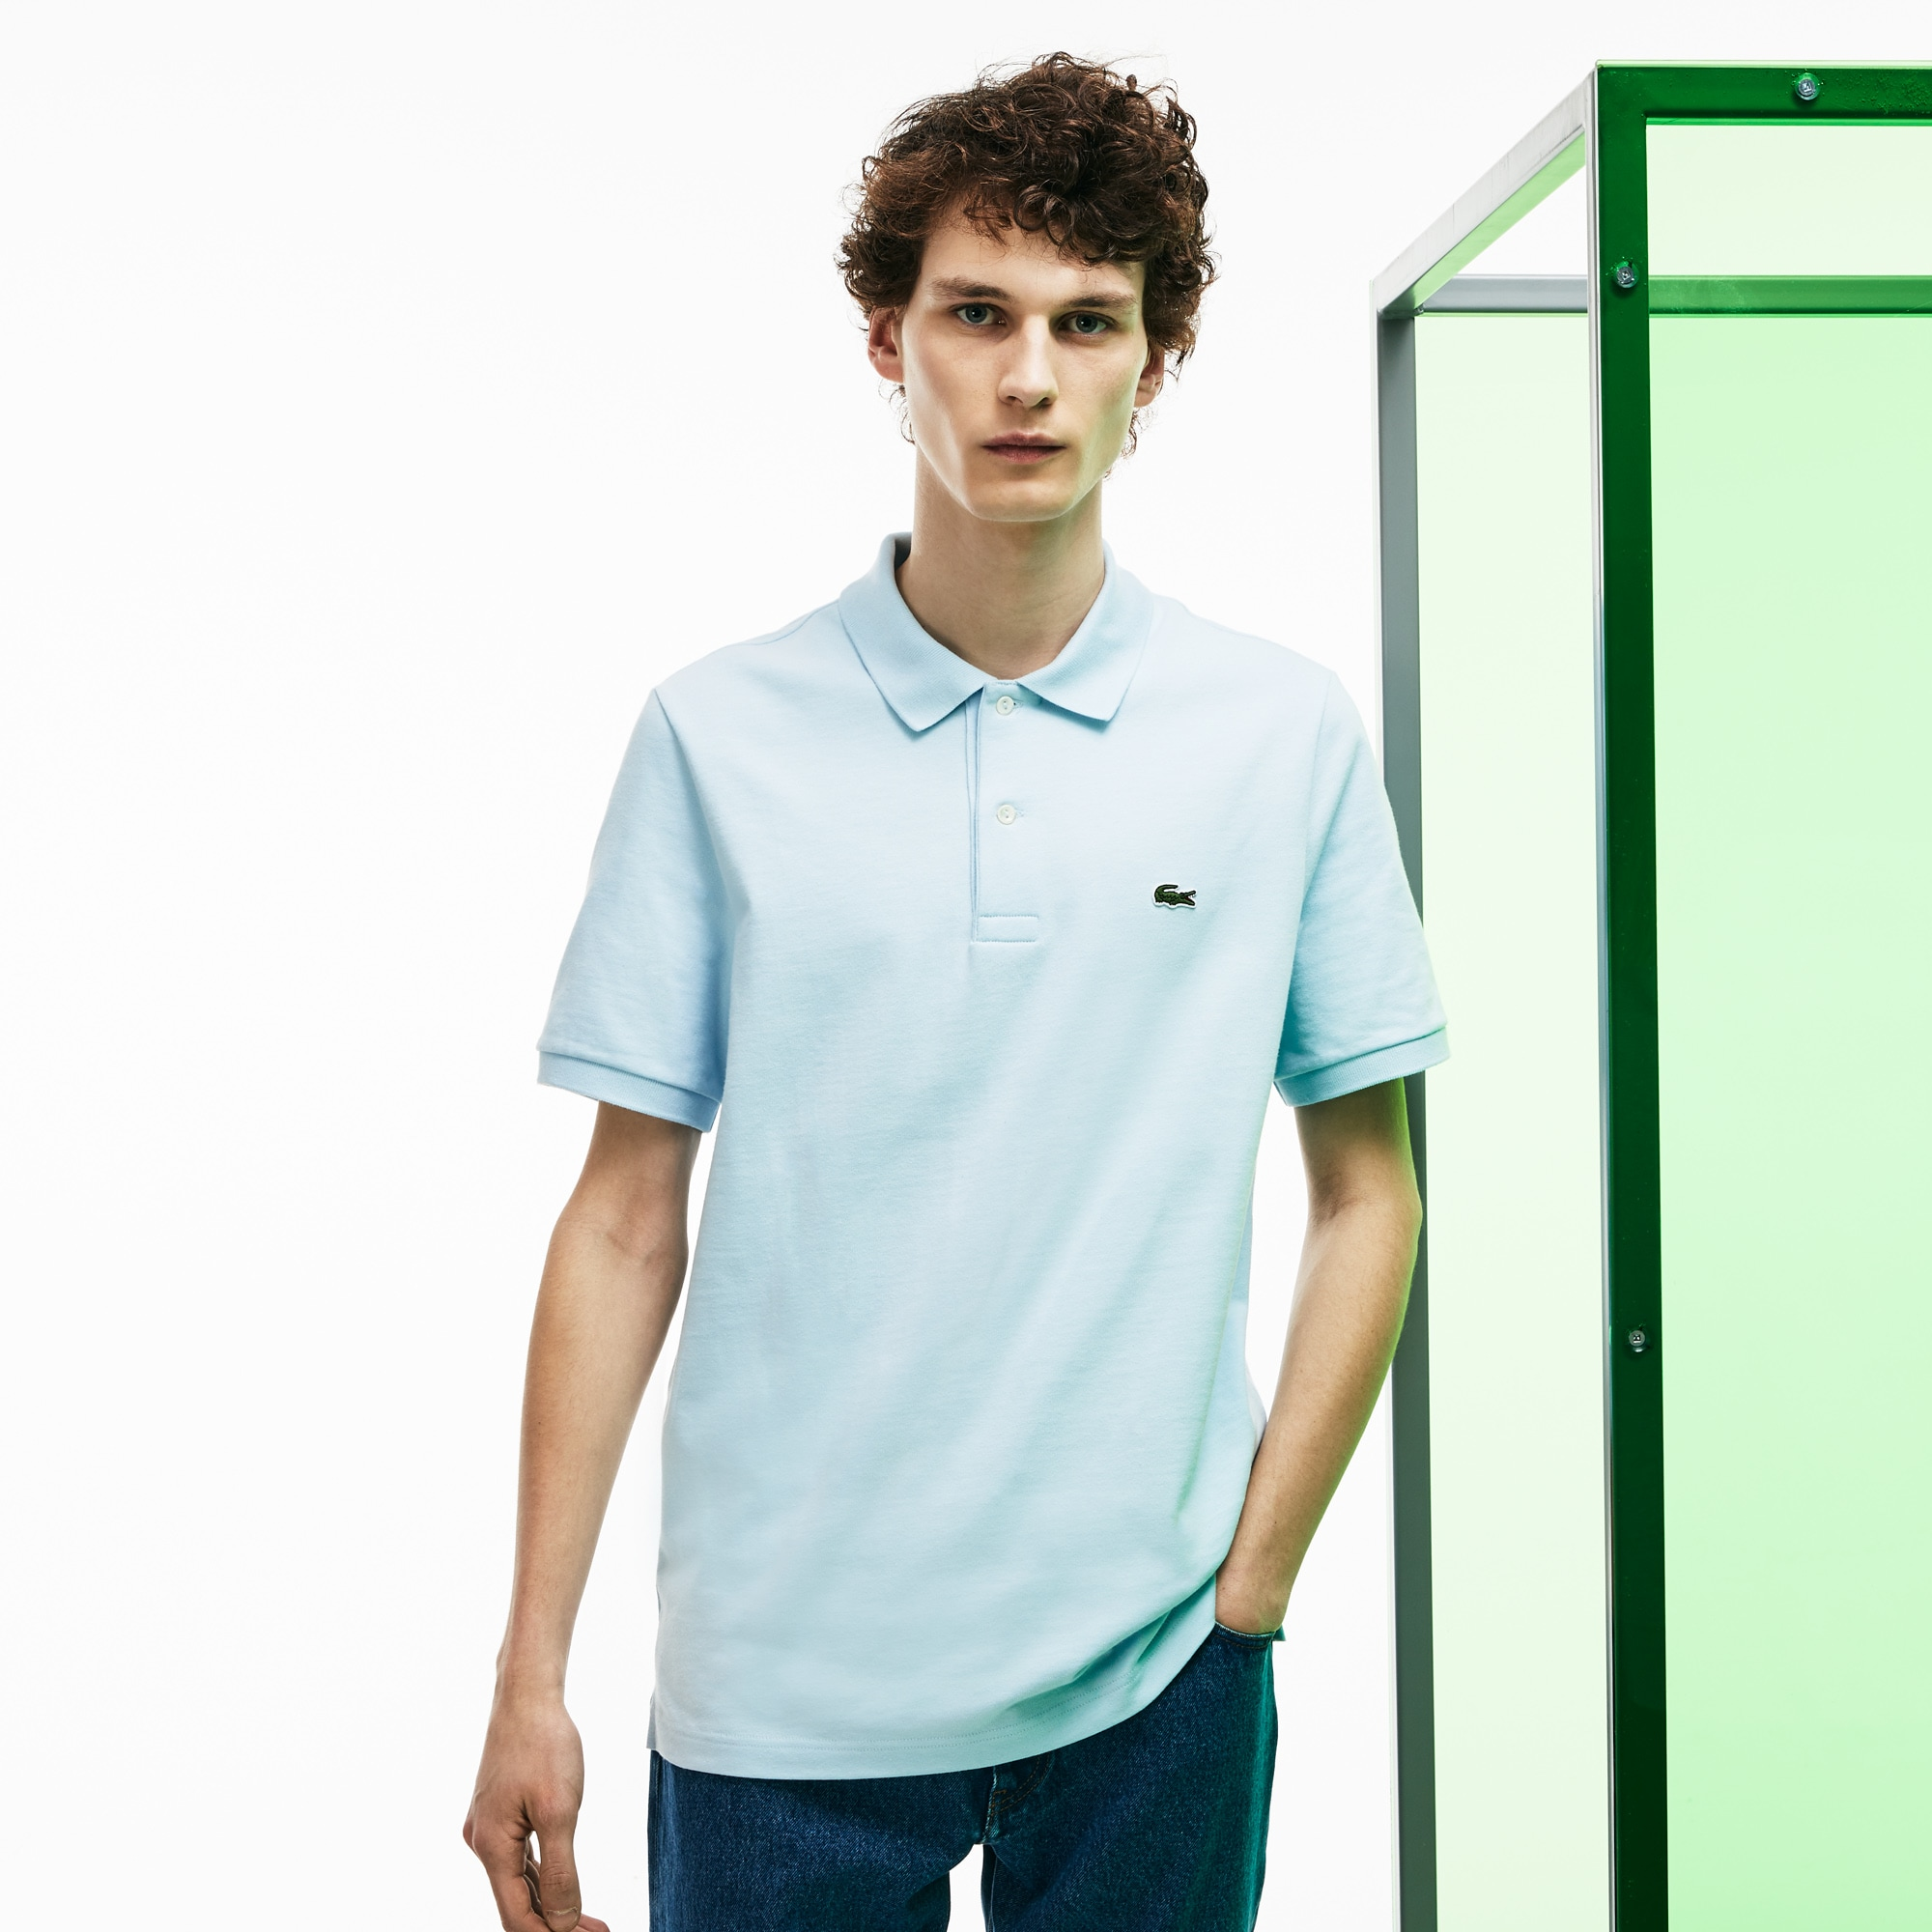 Men's Lacoste Fashion Show Thick Cotton Jersey Polo Shirt